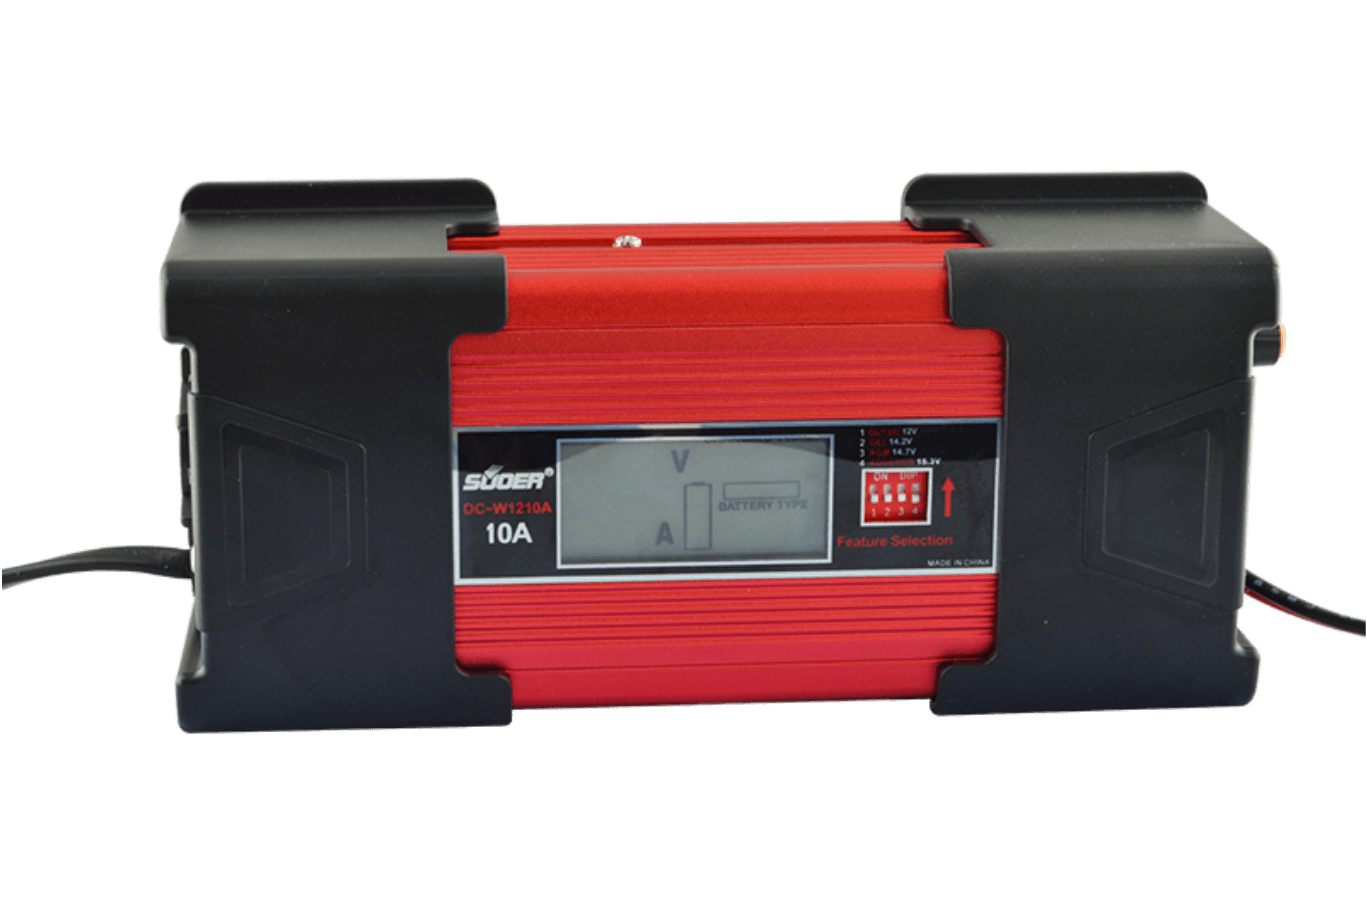 Battery Charger - DC-W1210A